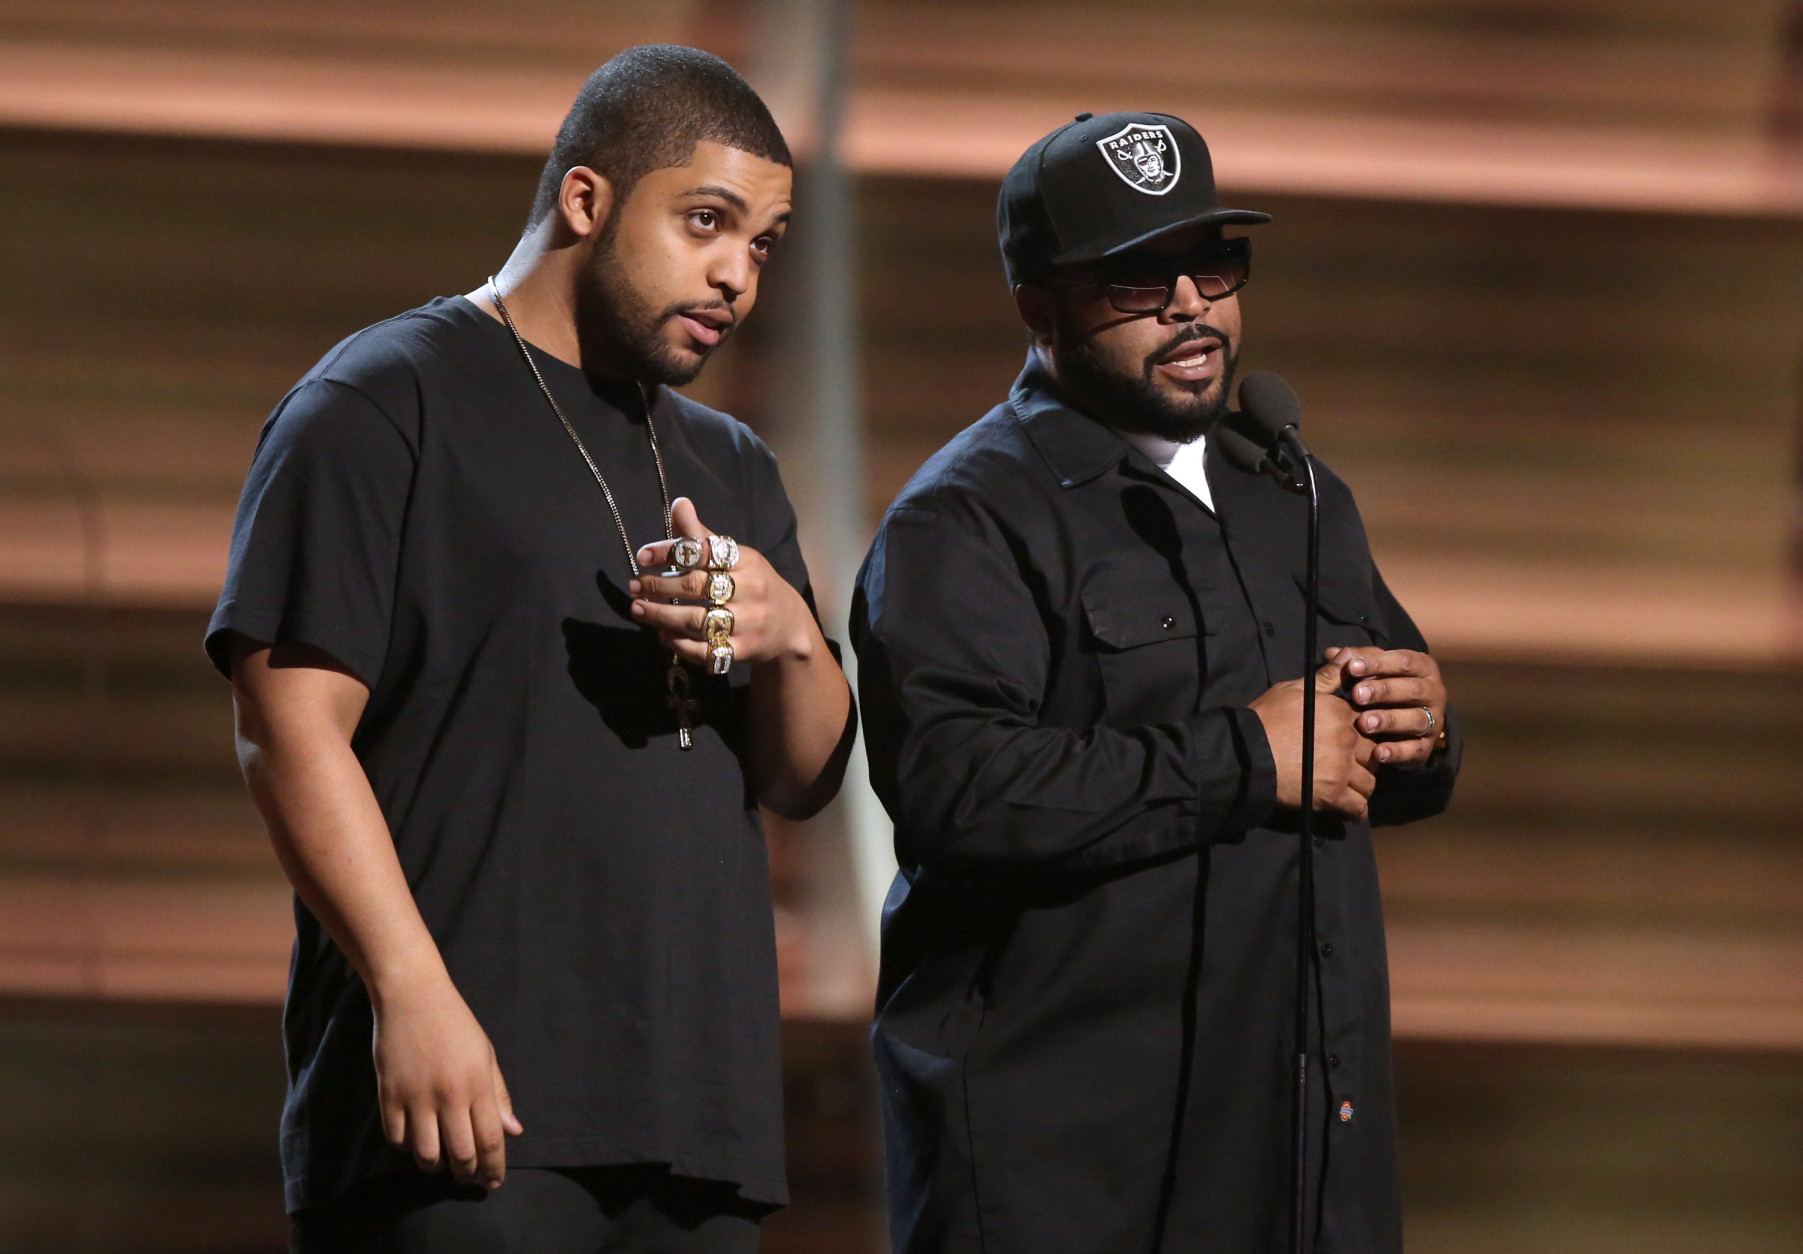 O'Shea Jackson Jr., left, and Ice Cube present the award for best rap album at the 58th annual Grammy Awards on Monday, Feb. 15, 2016, in Los Angeles. (Photo by Matt Sayles/Invision/AP)